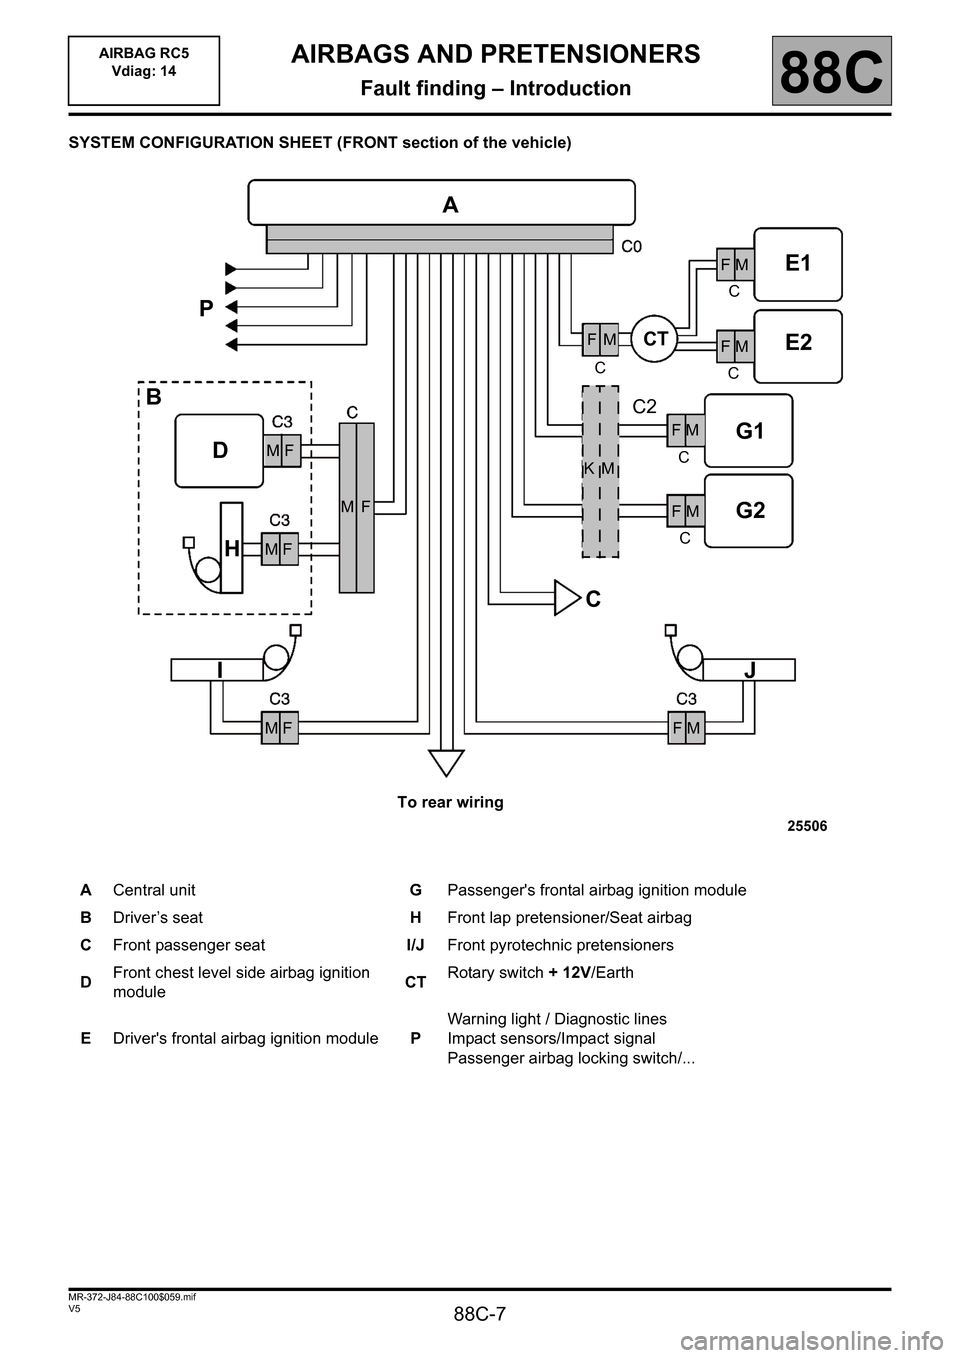 Mazda Cx 9 Fuse Box Diagram. Mazda. Auto Fuse Box Diagram